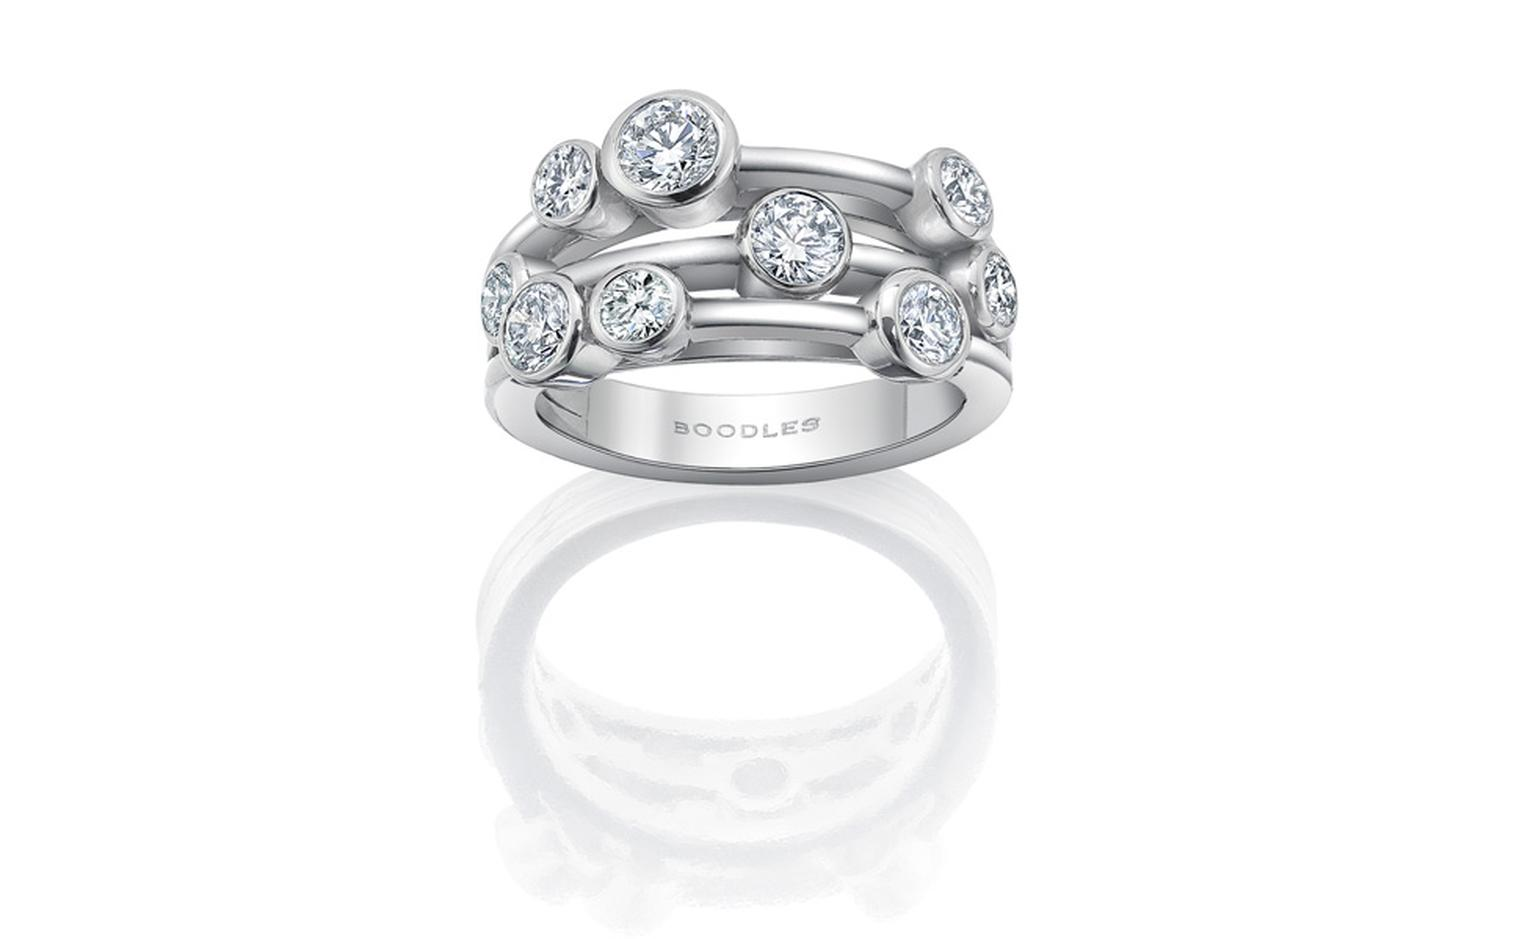 Boodles Signature Raindance ring from £7500